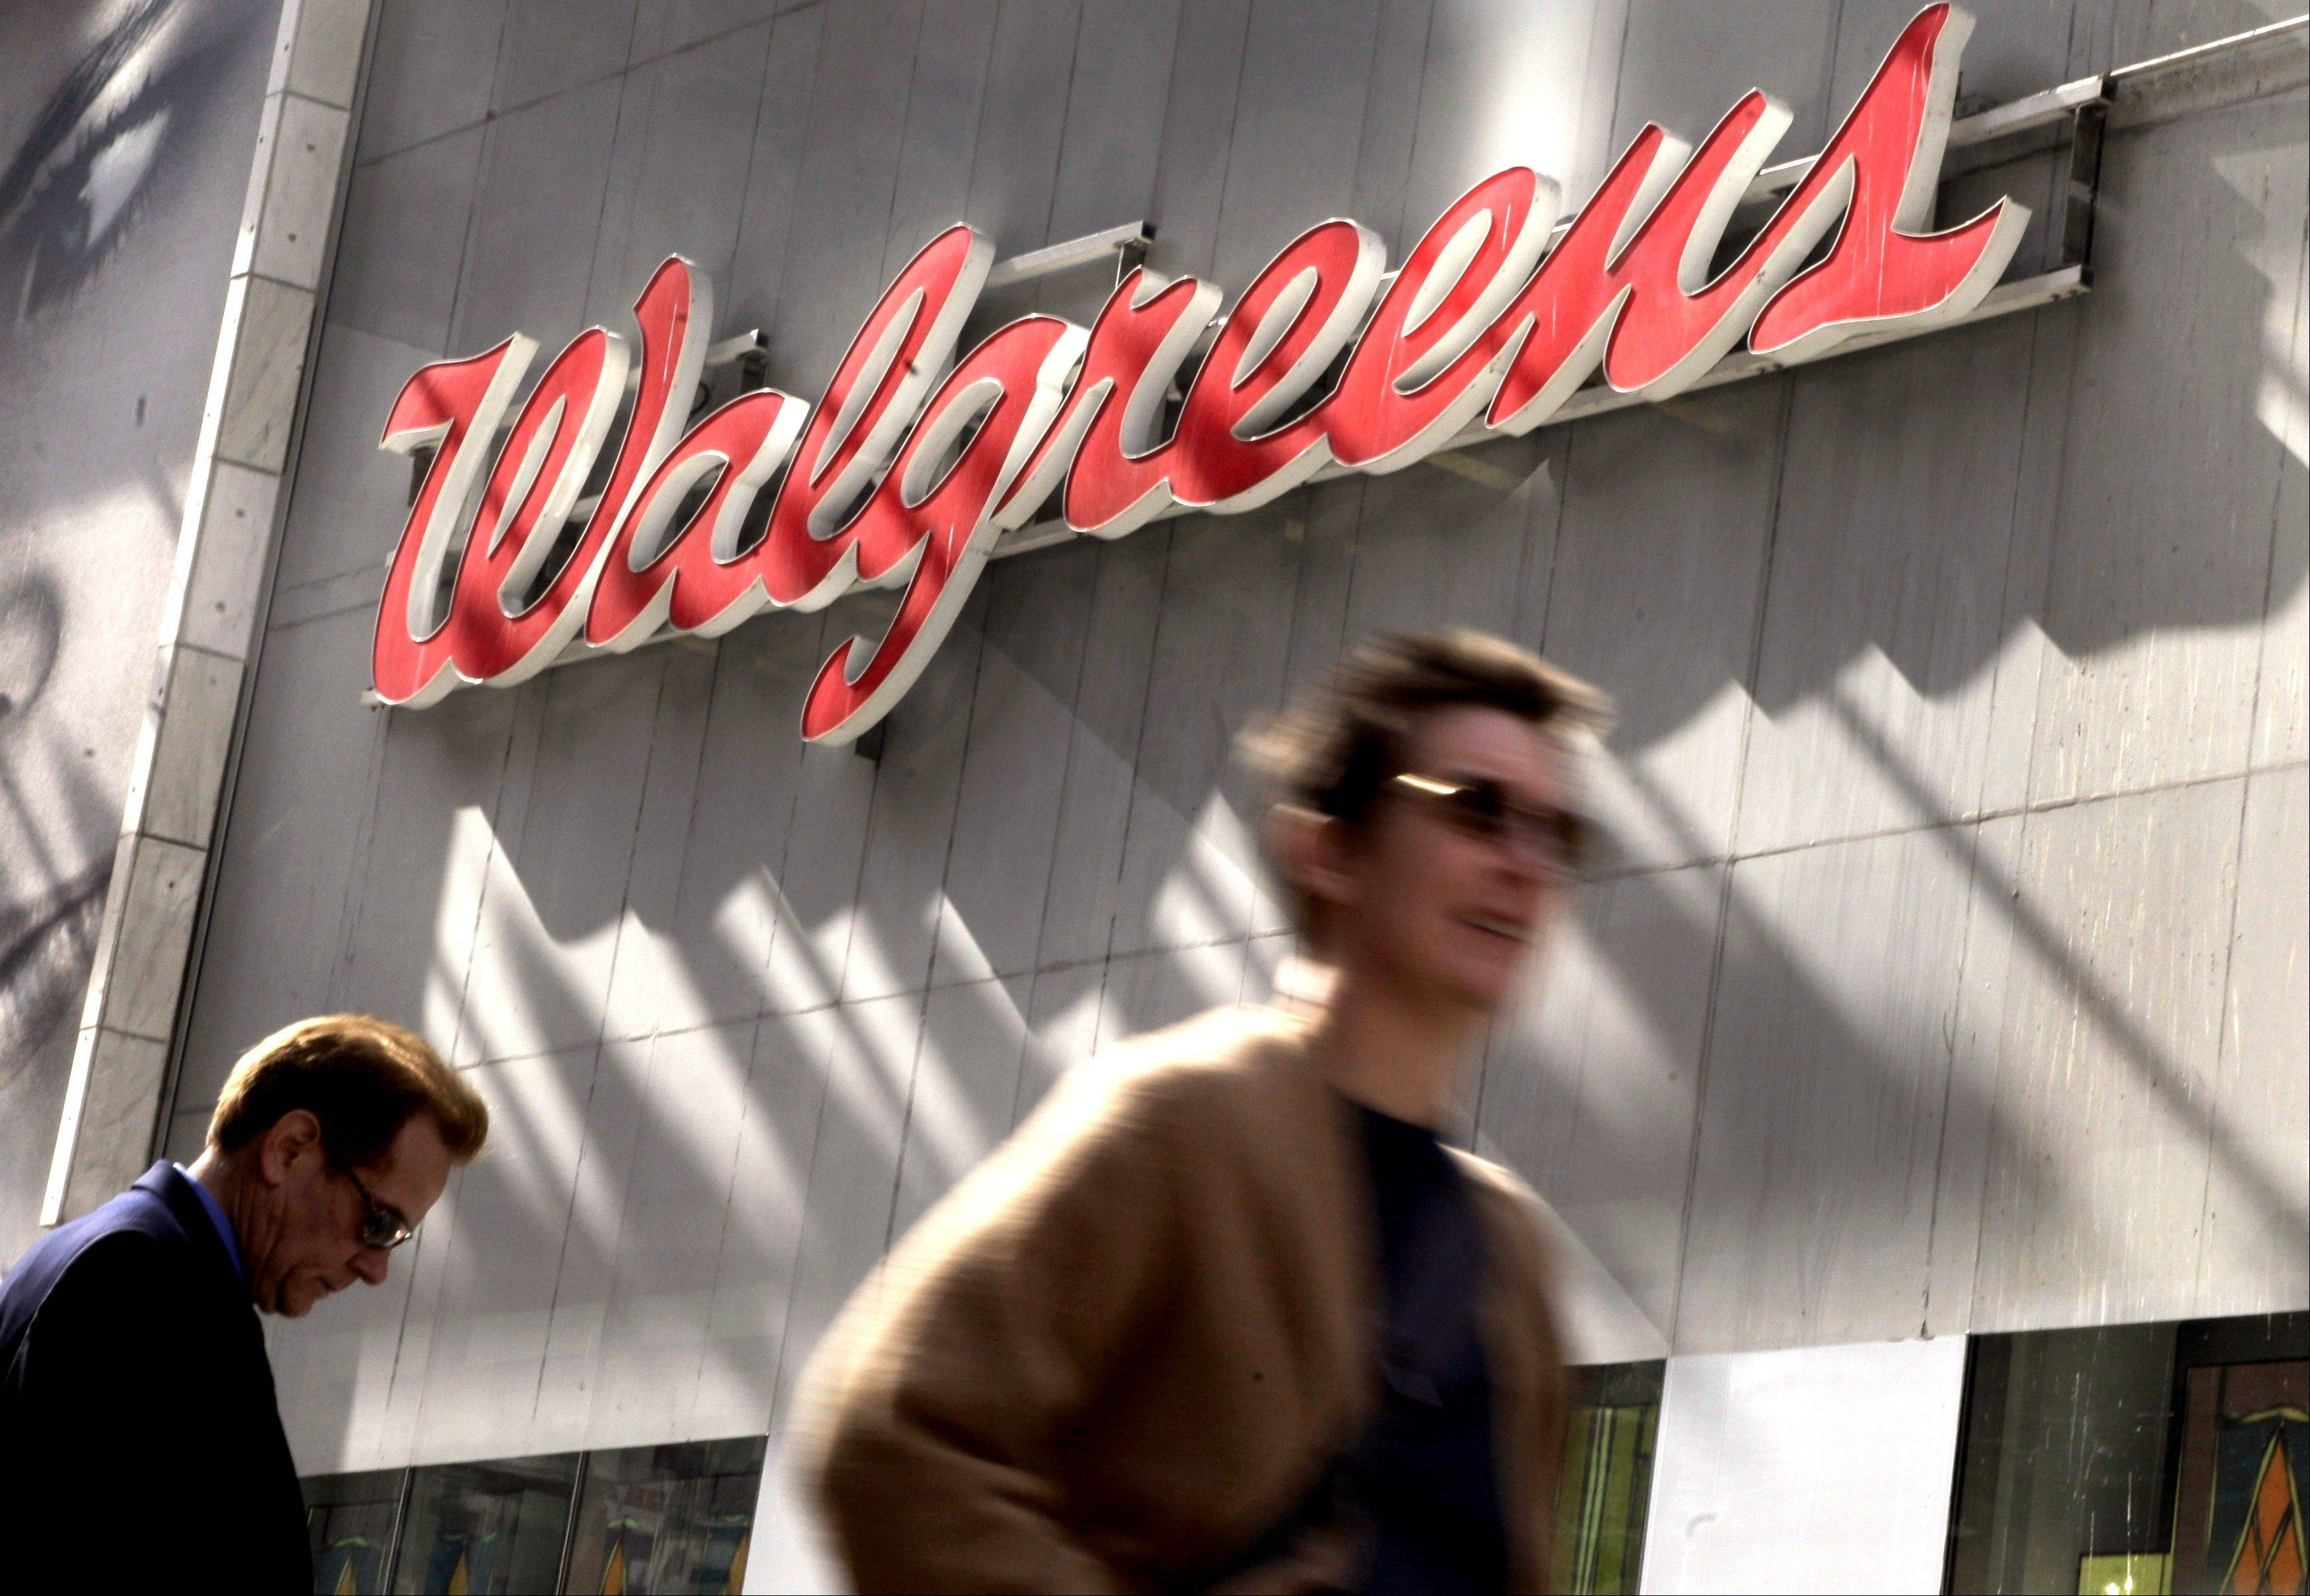 Deerfield-based Walgreen Co. says revenue from its established stores rose 3.2 percent last month compared to November 2012.